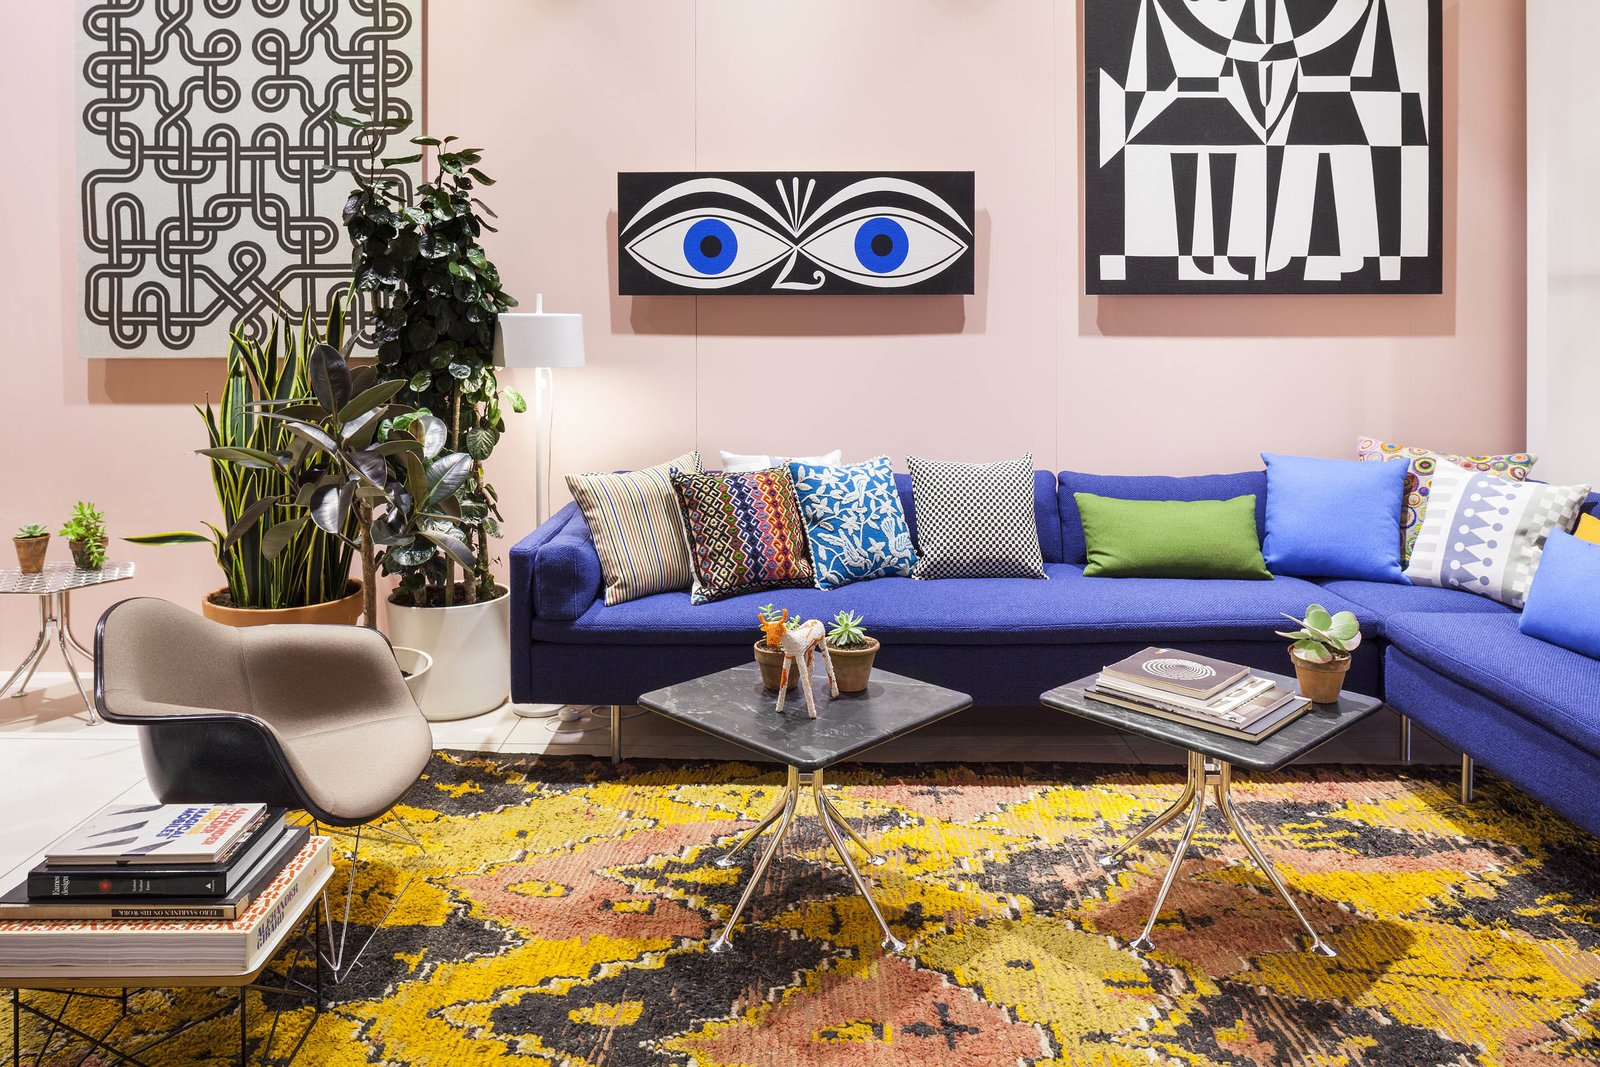 Girard Environmental Enrichment Panels of Eyes Illustration featured in a living room with other furniture